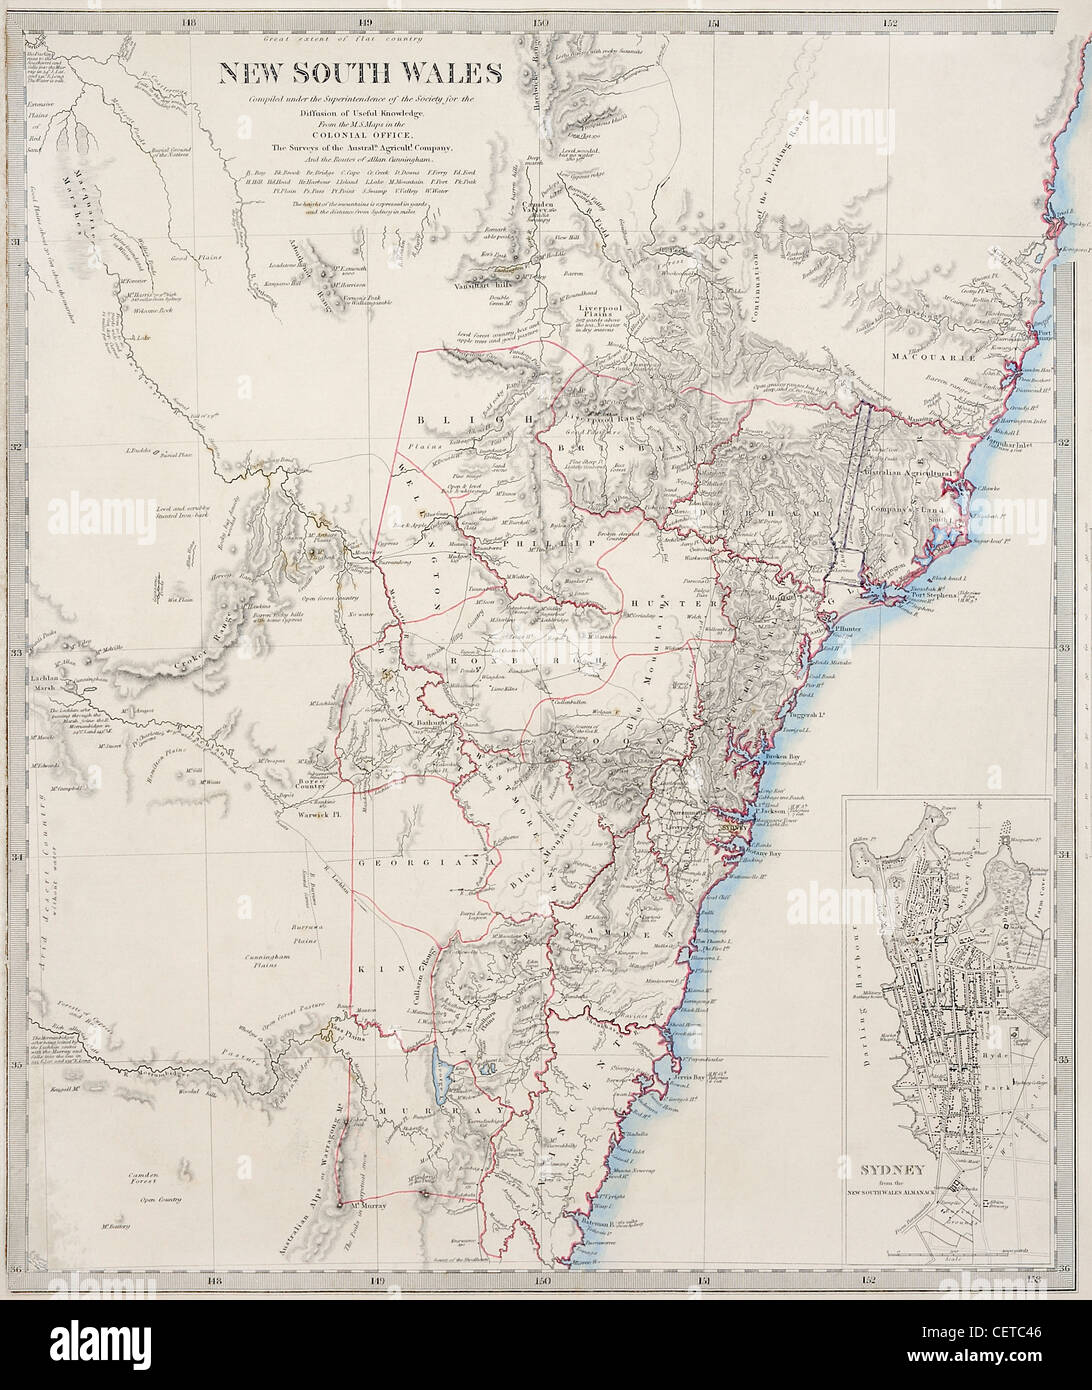 19th century map of new south wales and sydney australia dated 1853